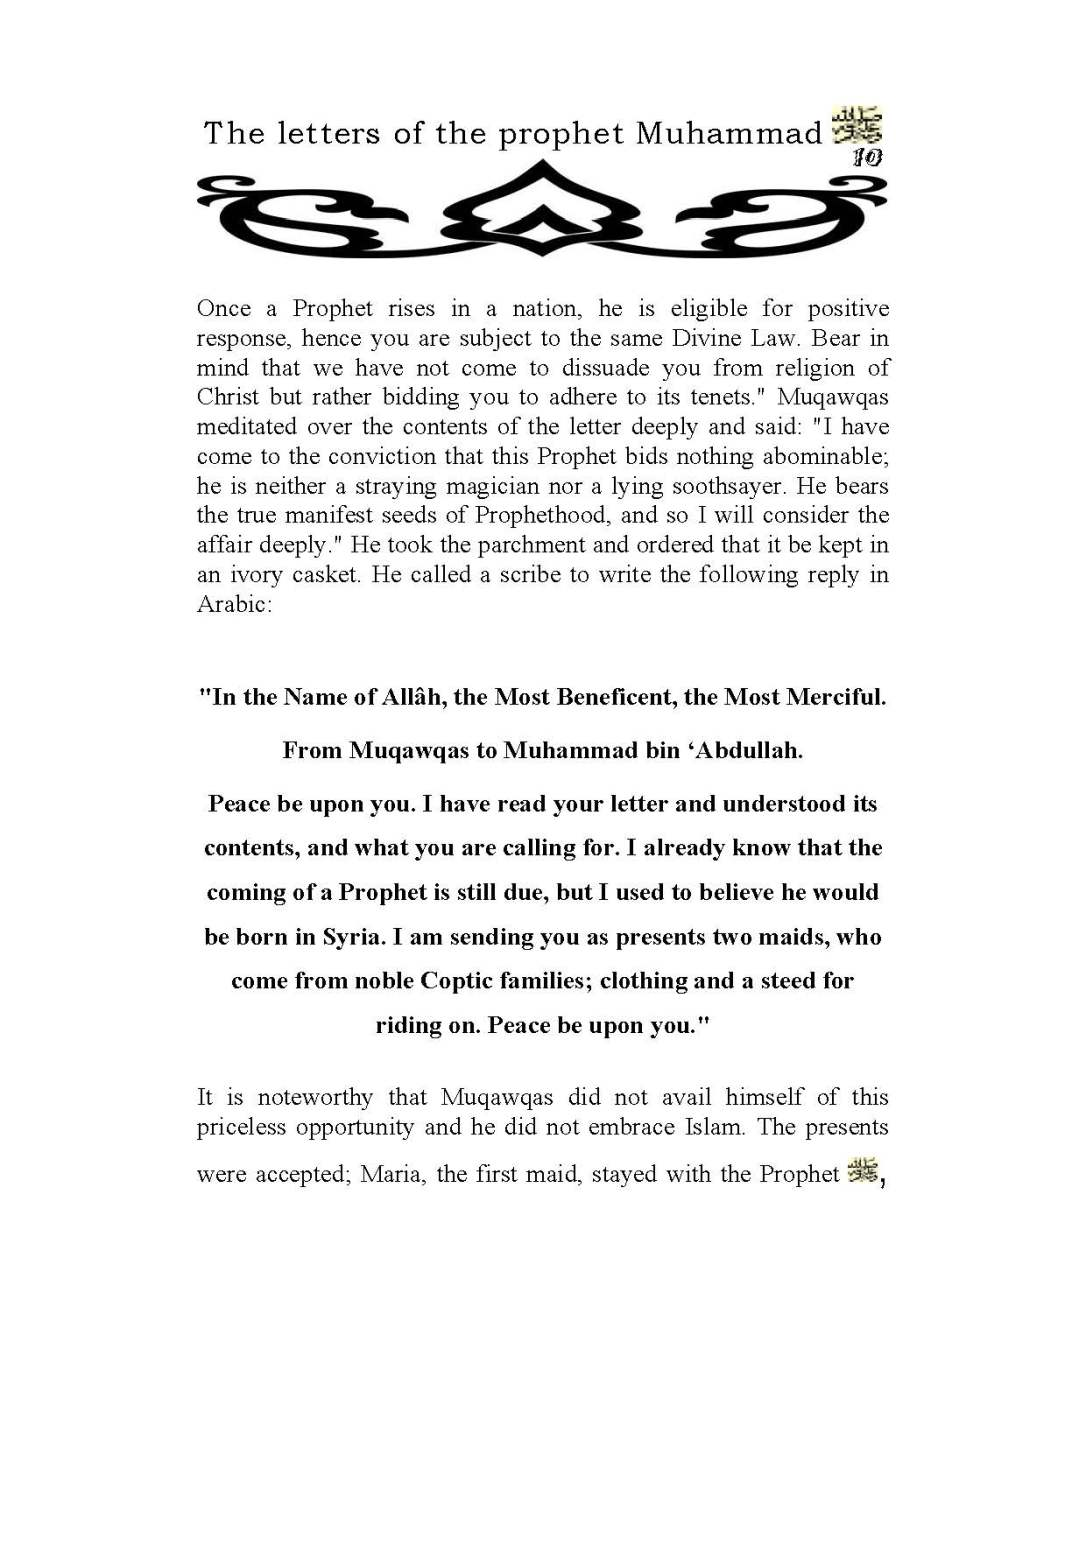 The-Letters-of-Prophet-Muhammad-saw_Page_11